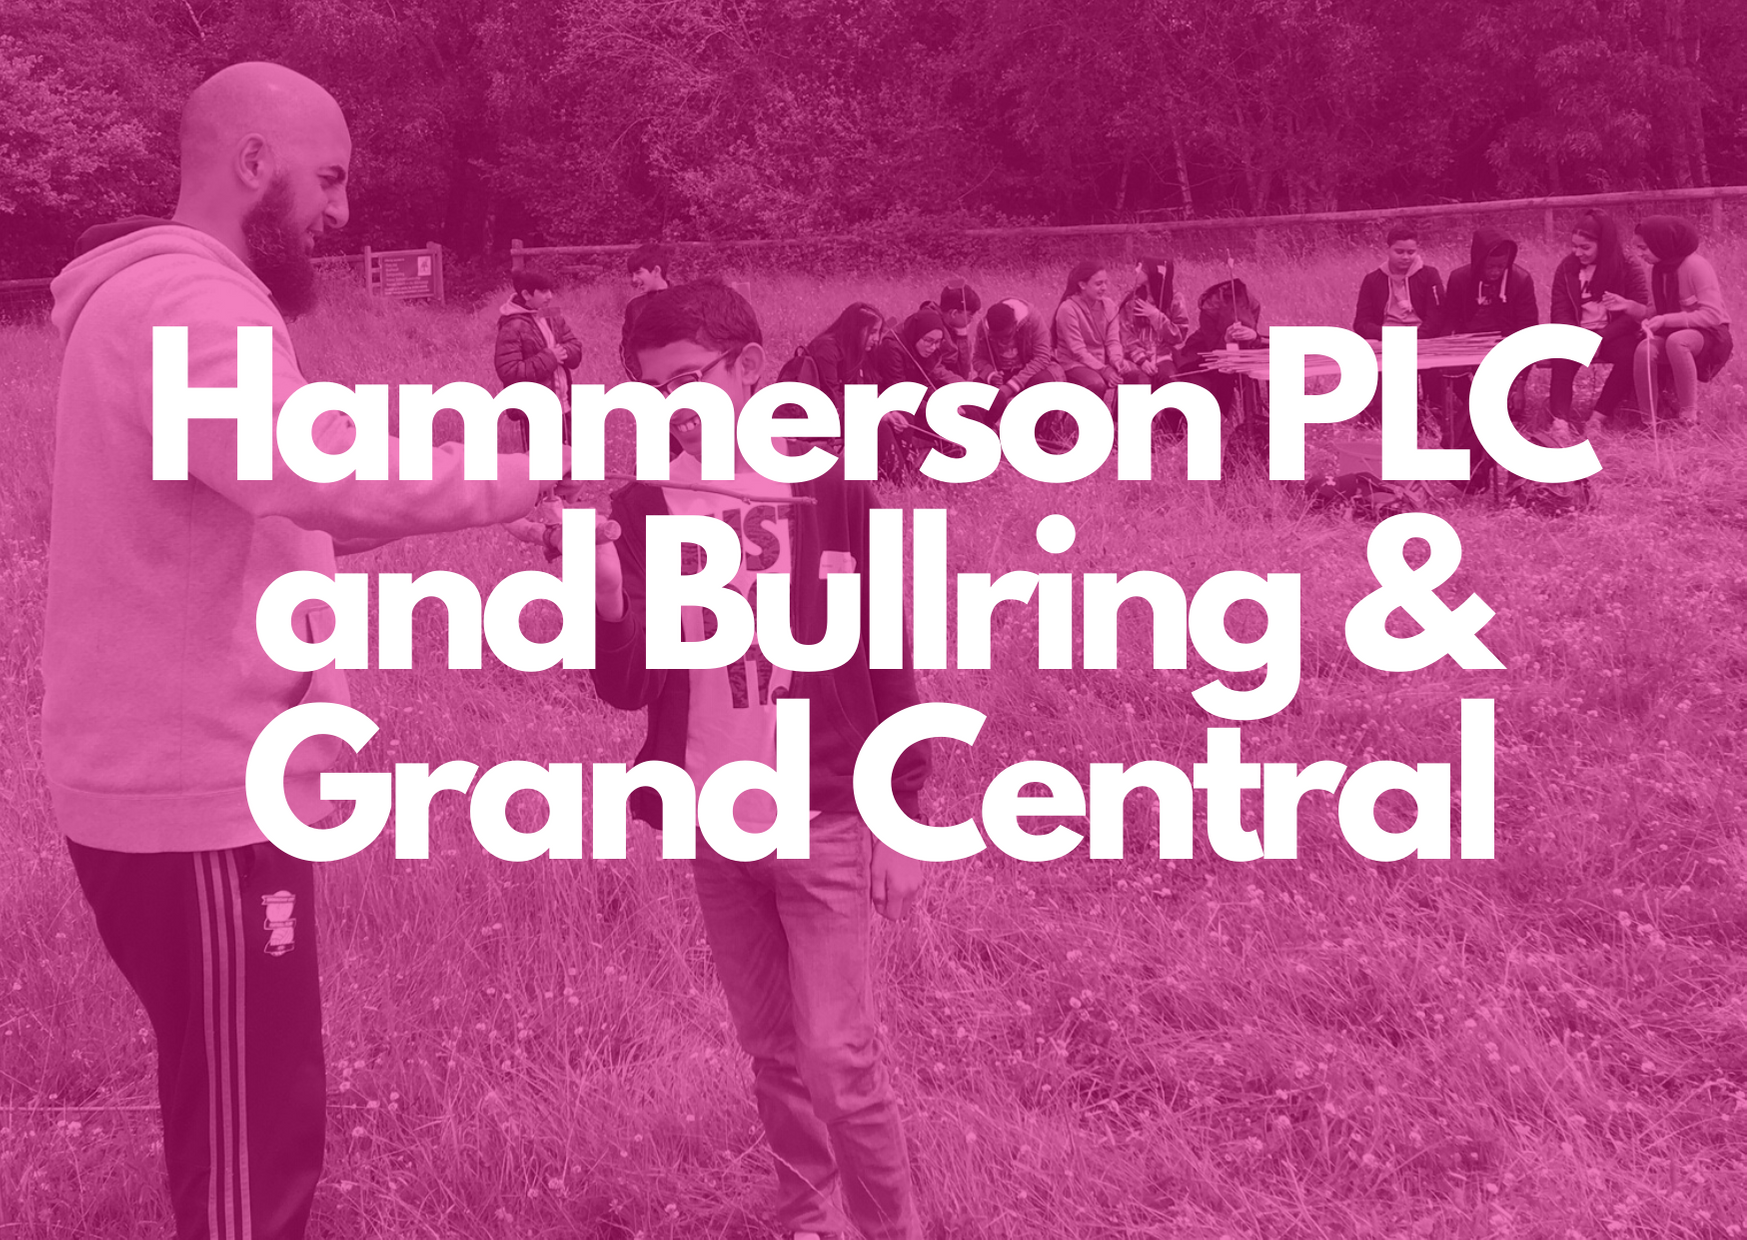 Donor Spotlight: Hammerson PLC and Bullring & Grand Central